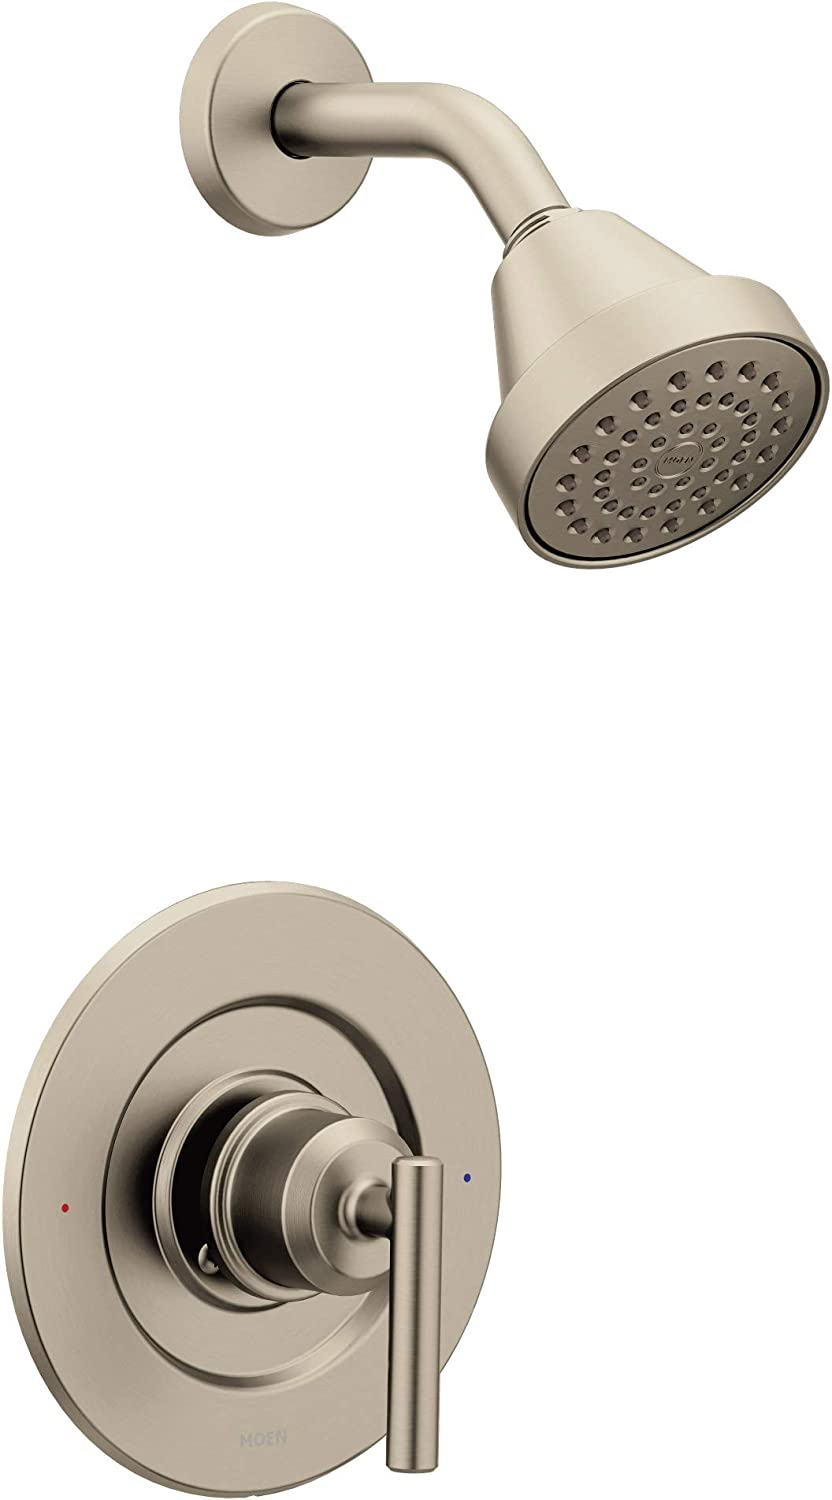 Moen T2902EPBL Gibson Posi-Temp Pressure Balancing Eco-Performance Modern Shower Only Trim, Valve Required, Matte Black - -